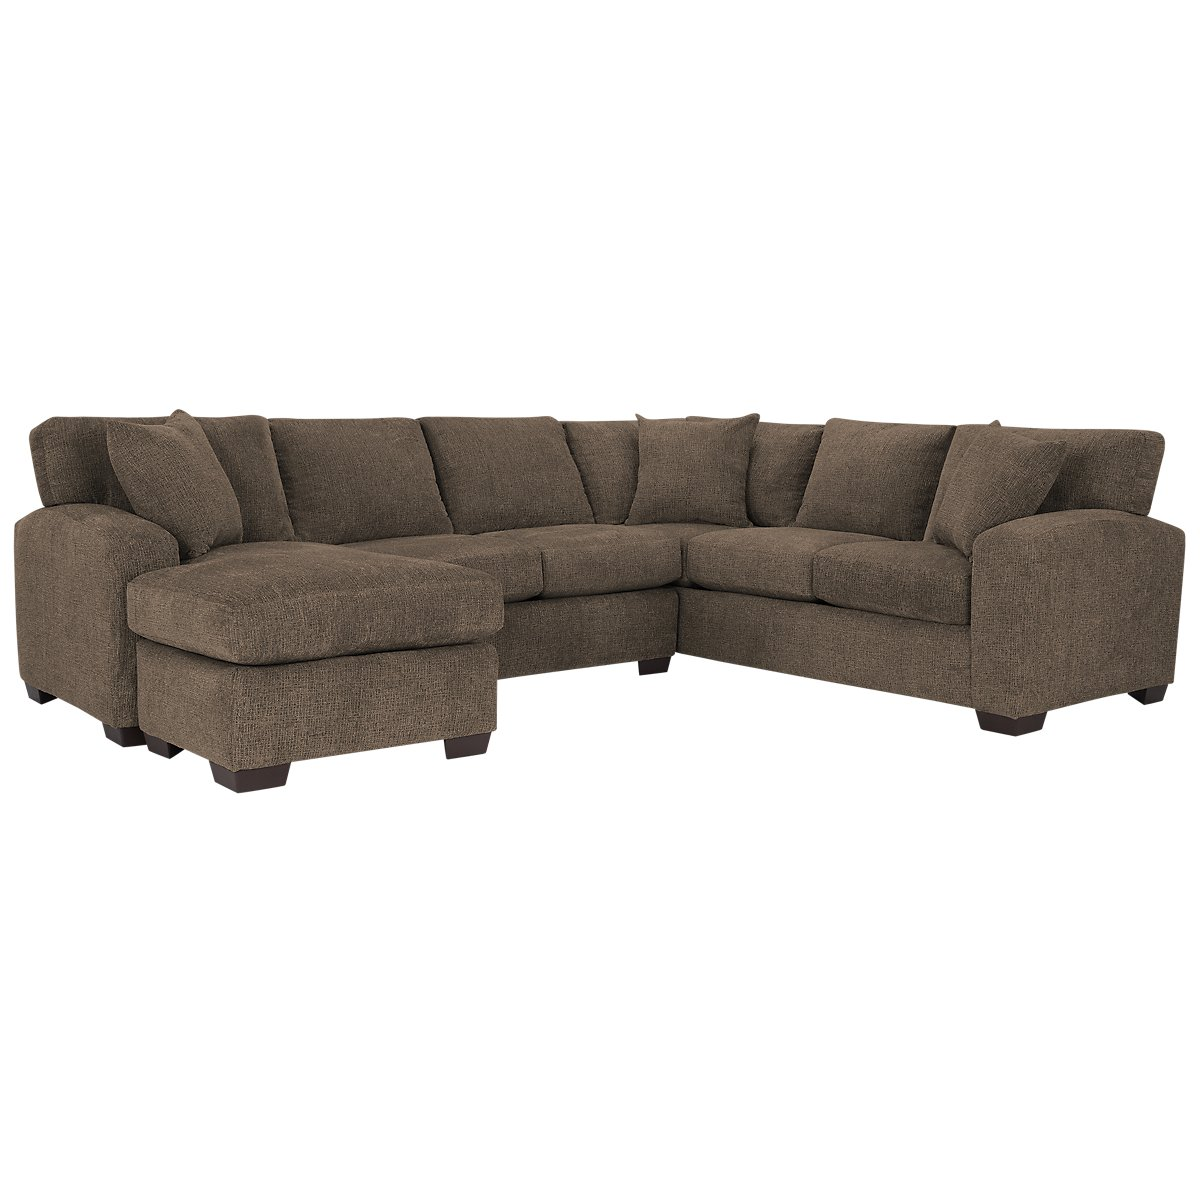 City furniture adam dark brown microfiber left chaise for Brown sectional with chaise